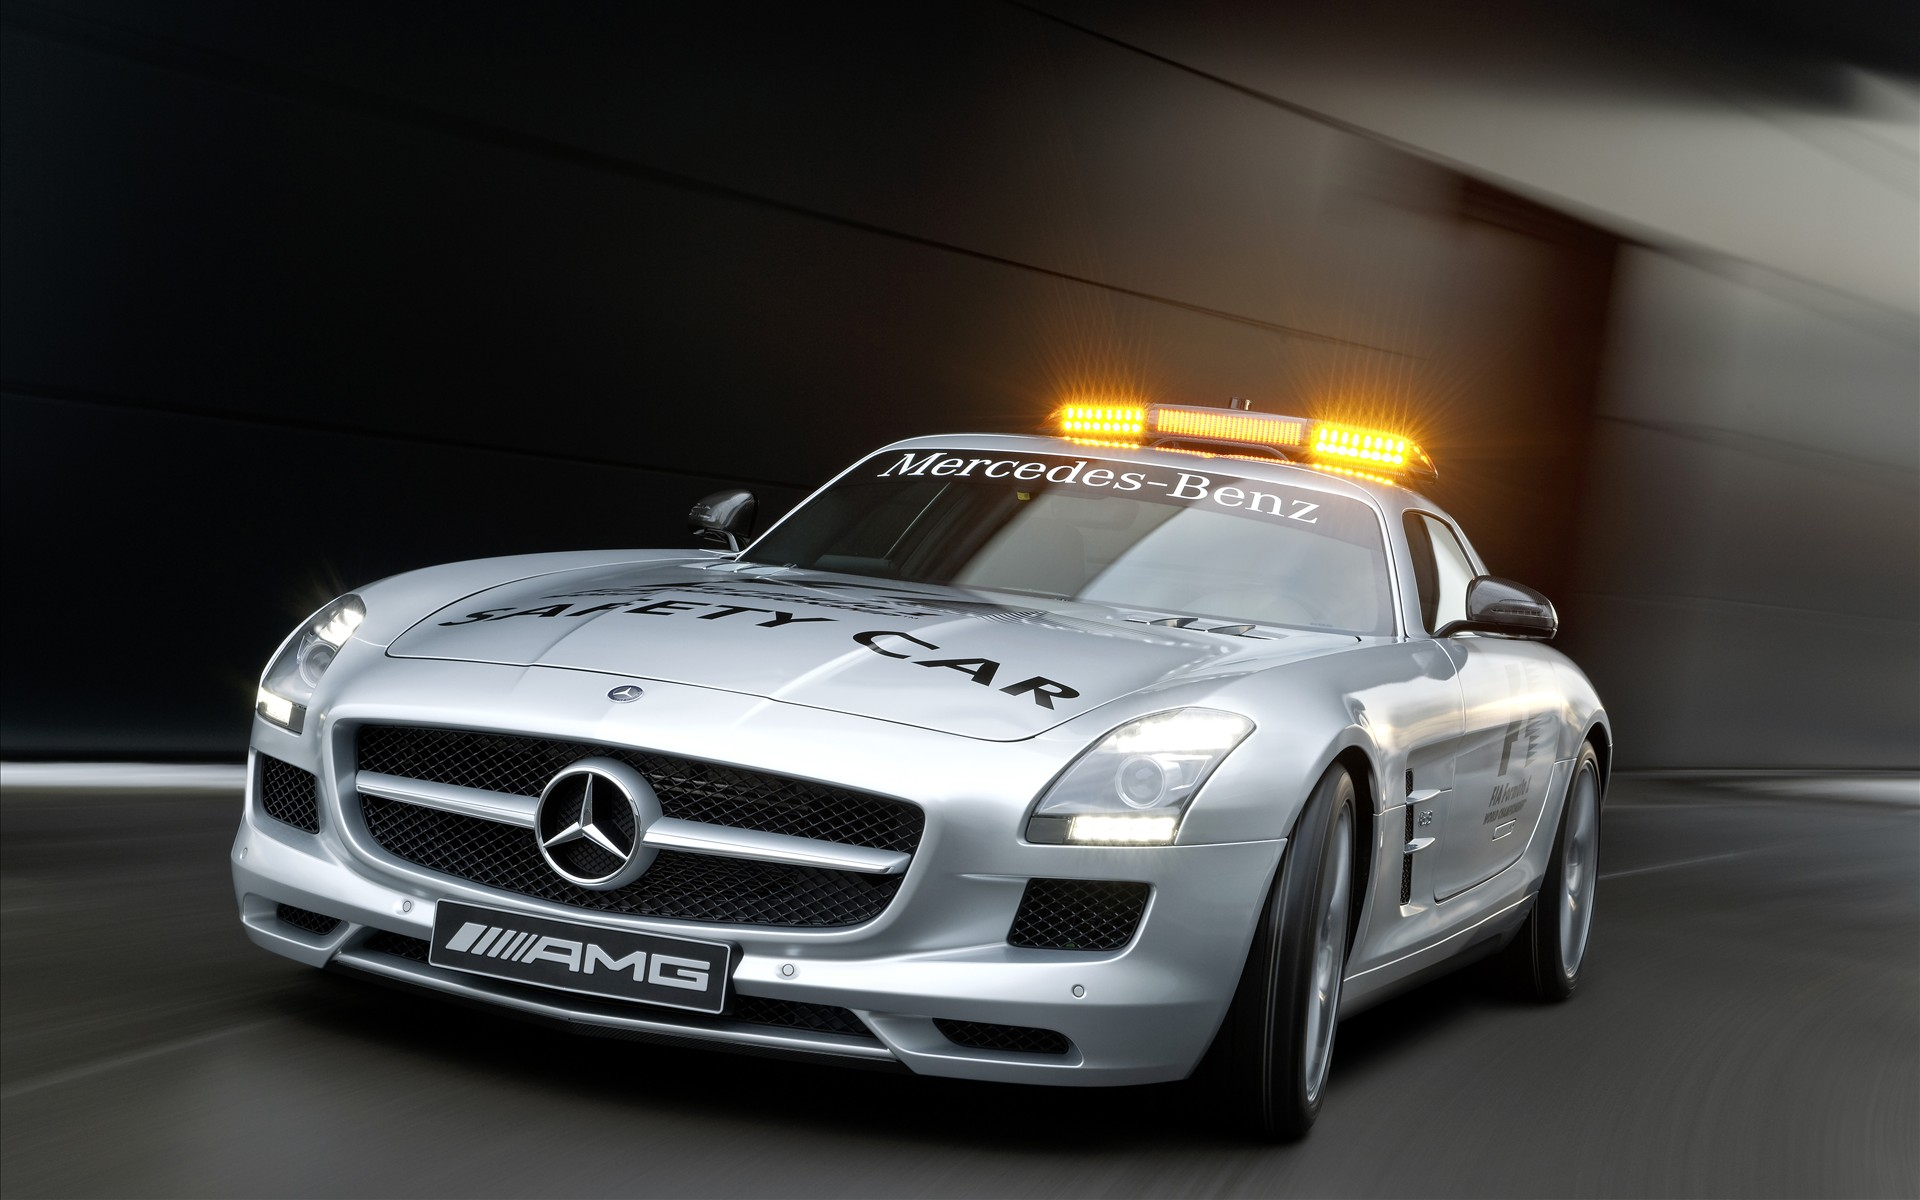 Download 2010 Mercedes Benz Sls Amg F1 Safety Car Cars Wallpapers